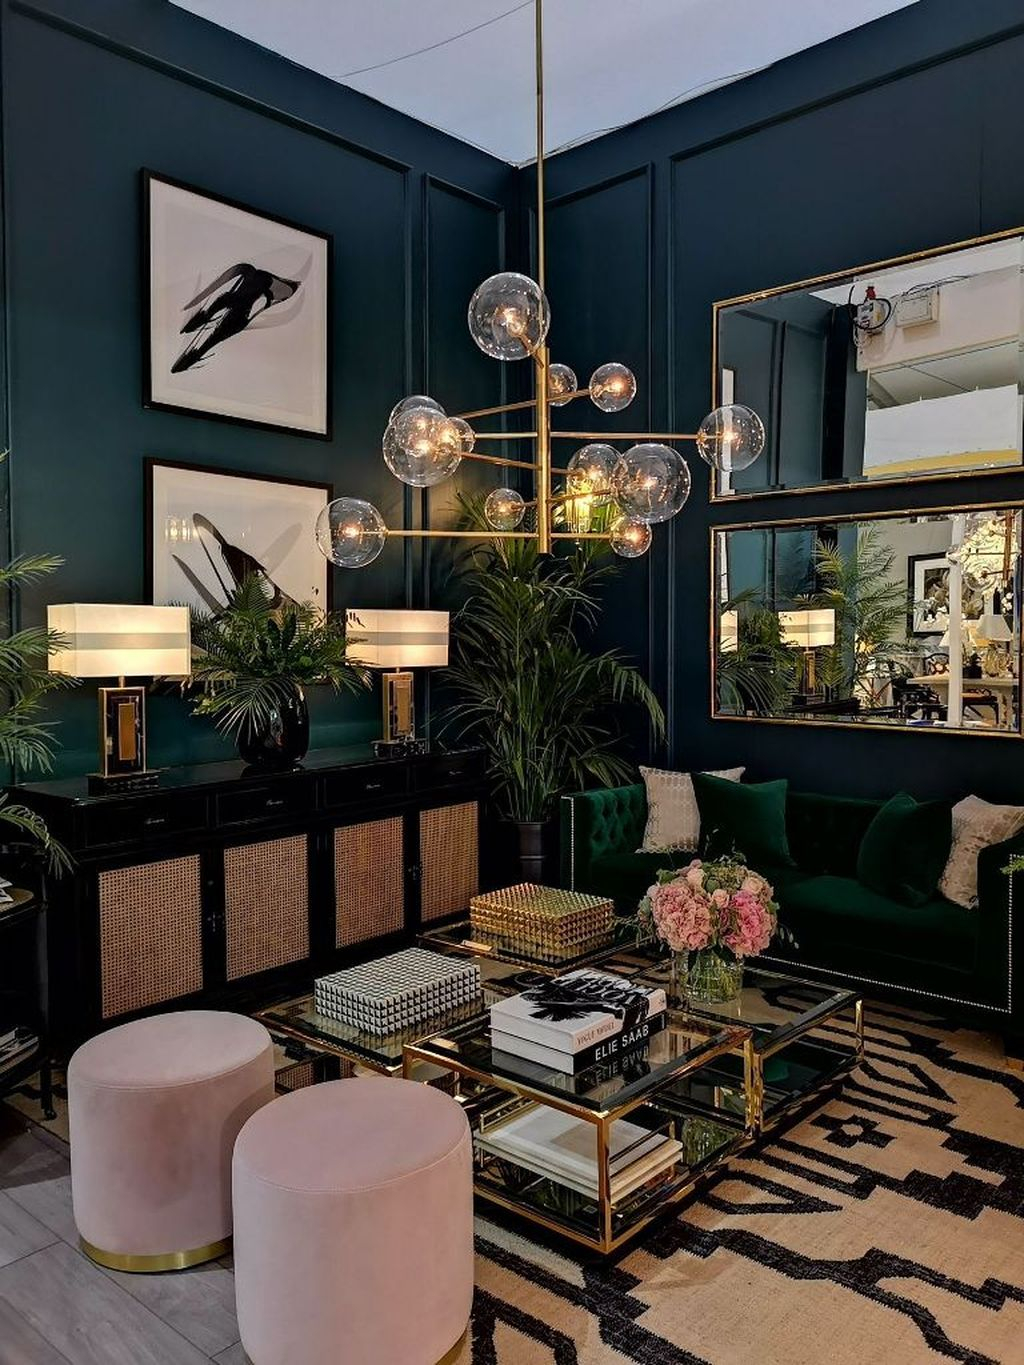 Marvelous Interior Design Ideas For Home That Looks Cool 07